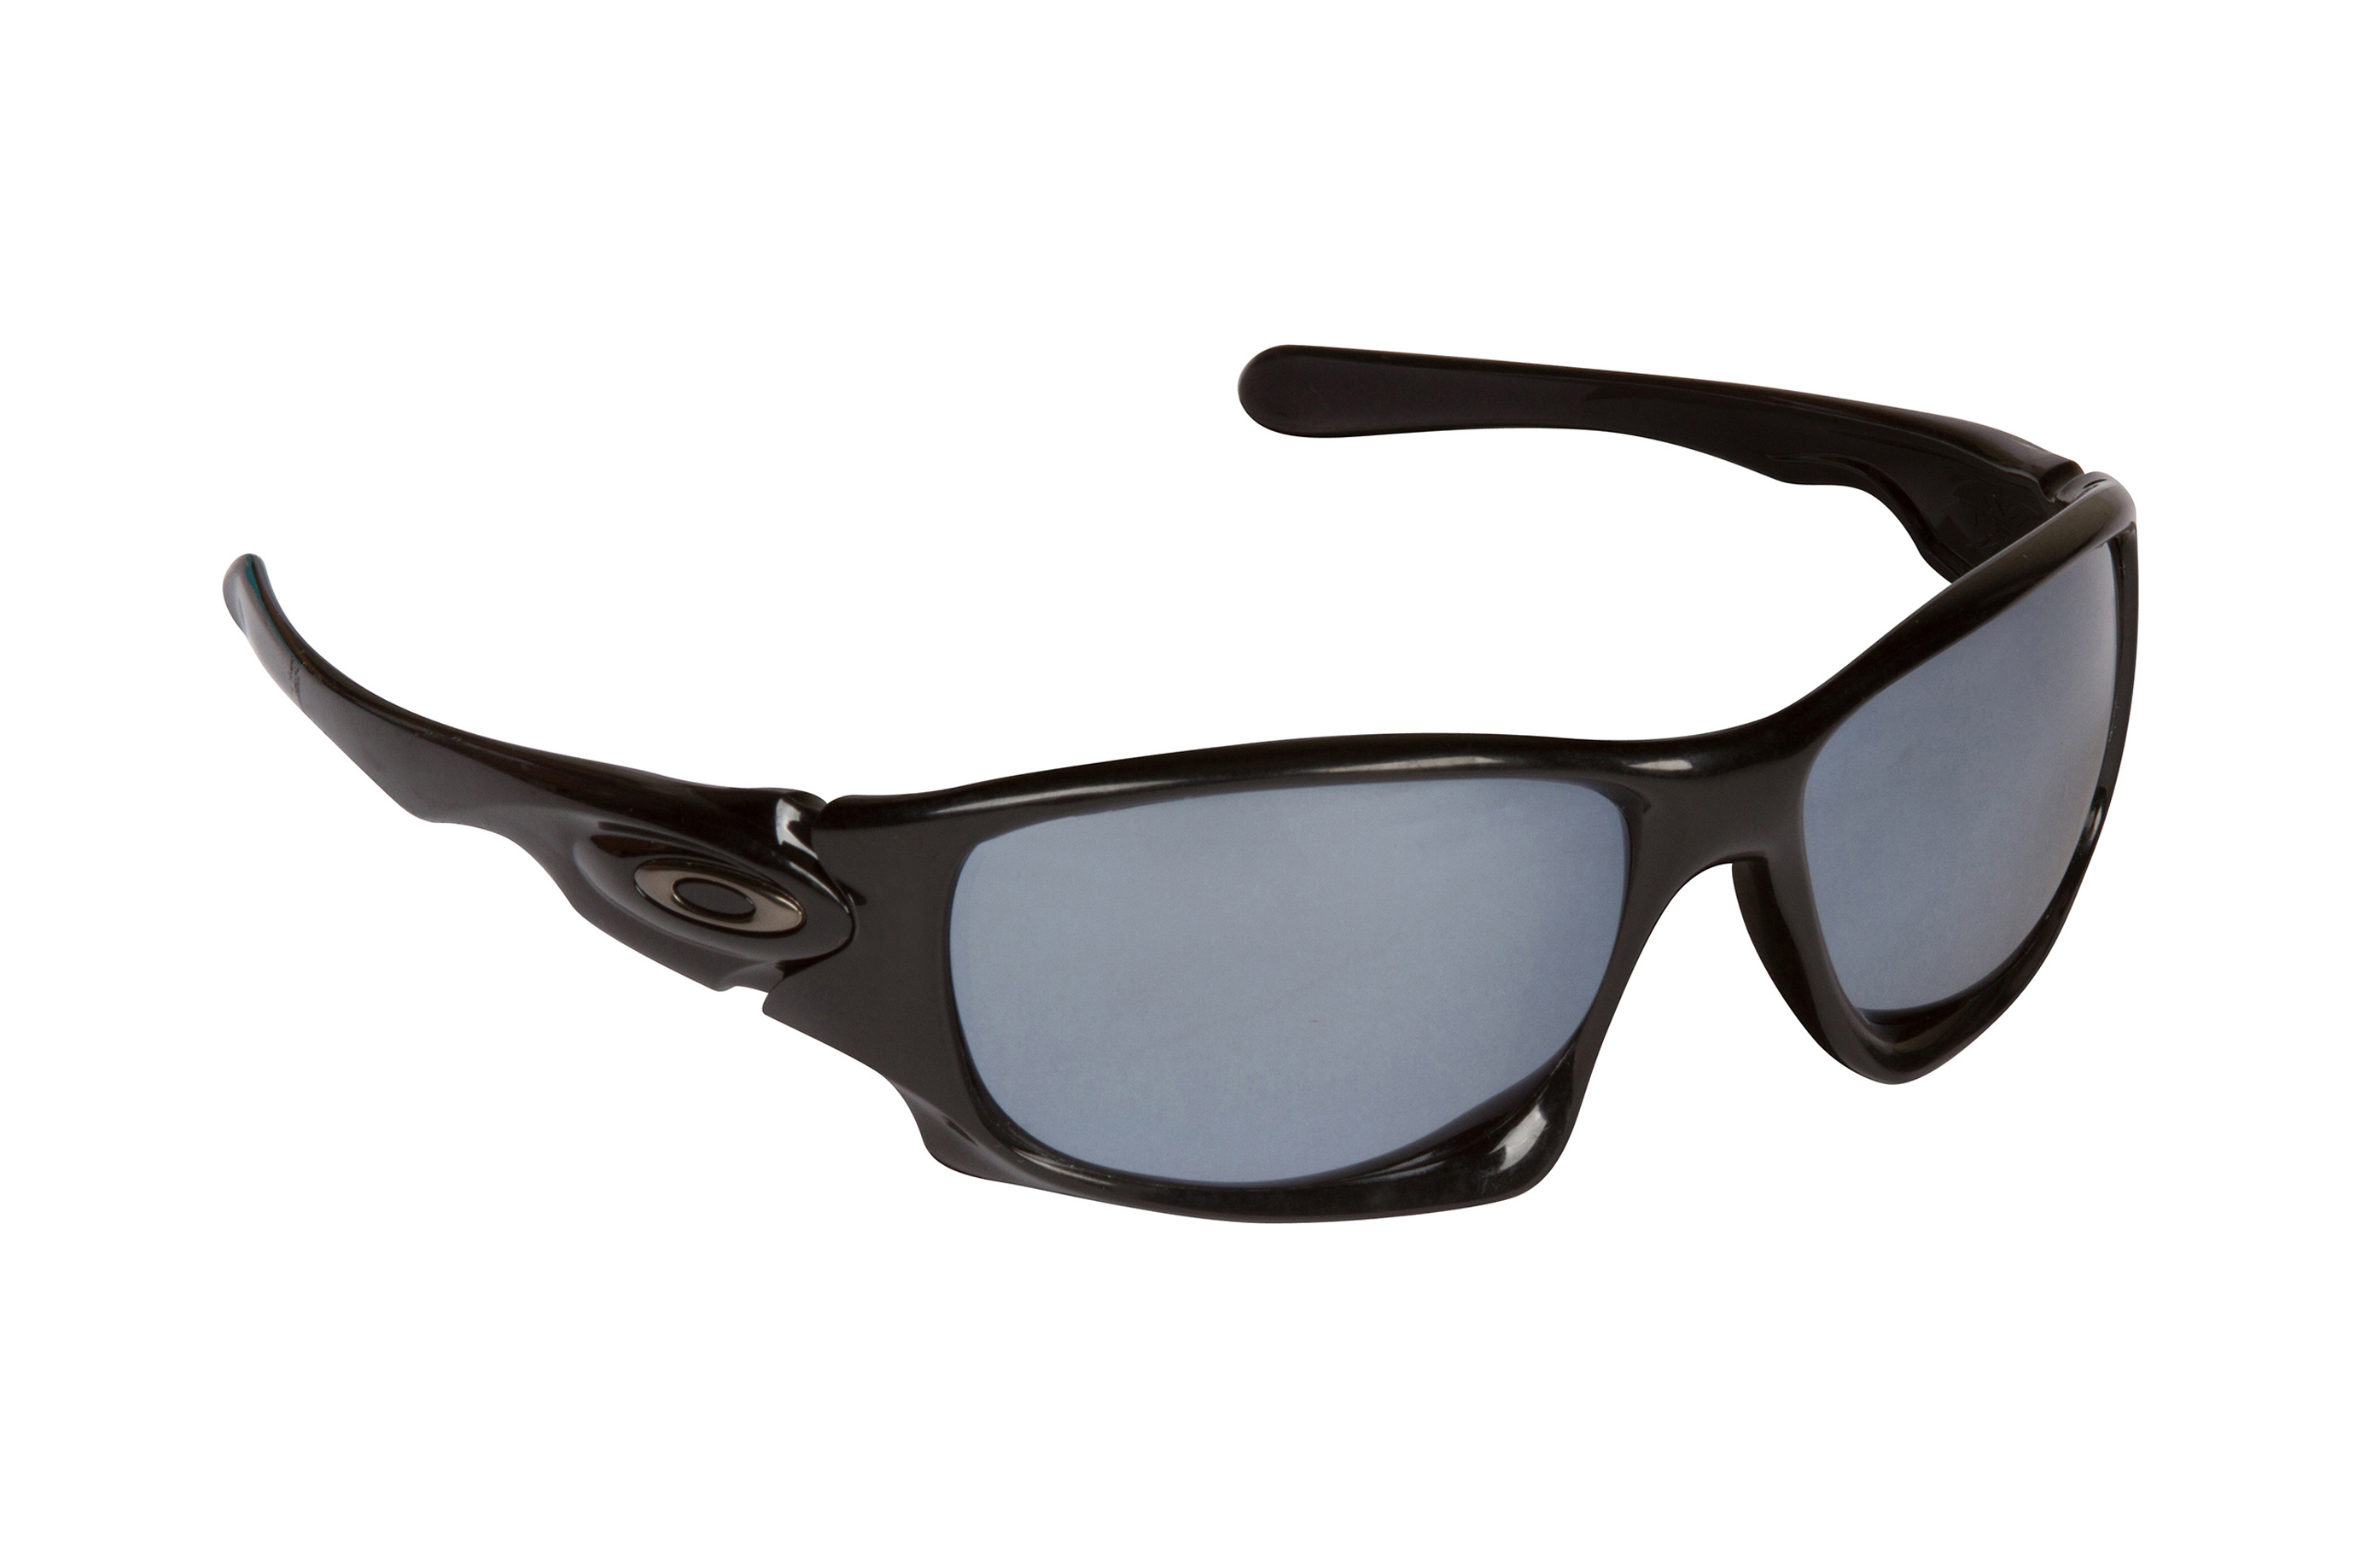 c5c36be10fe Ten X Replacement Lenses by SEEK OPTICS to fit OAKLEY Sunglasses